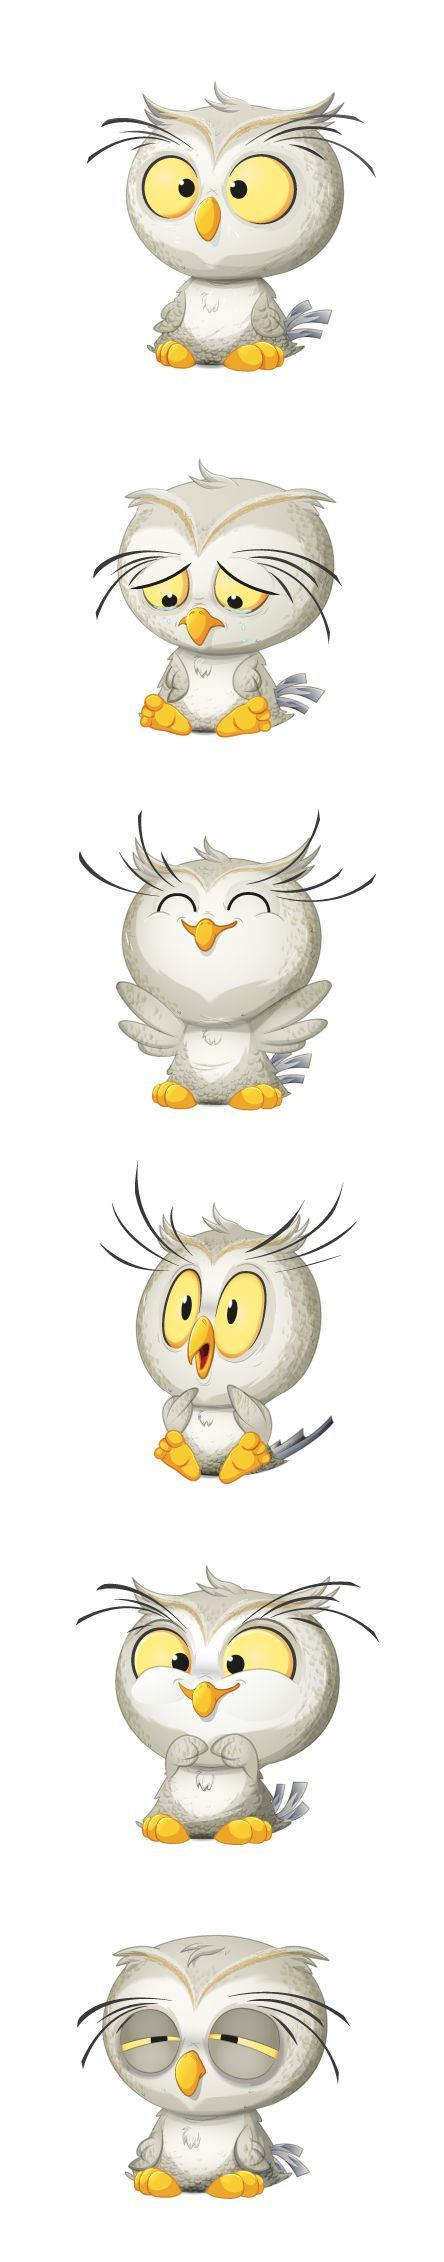 Baby owl stickers by Agustin Grassi: